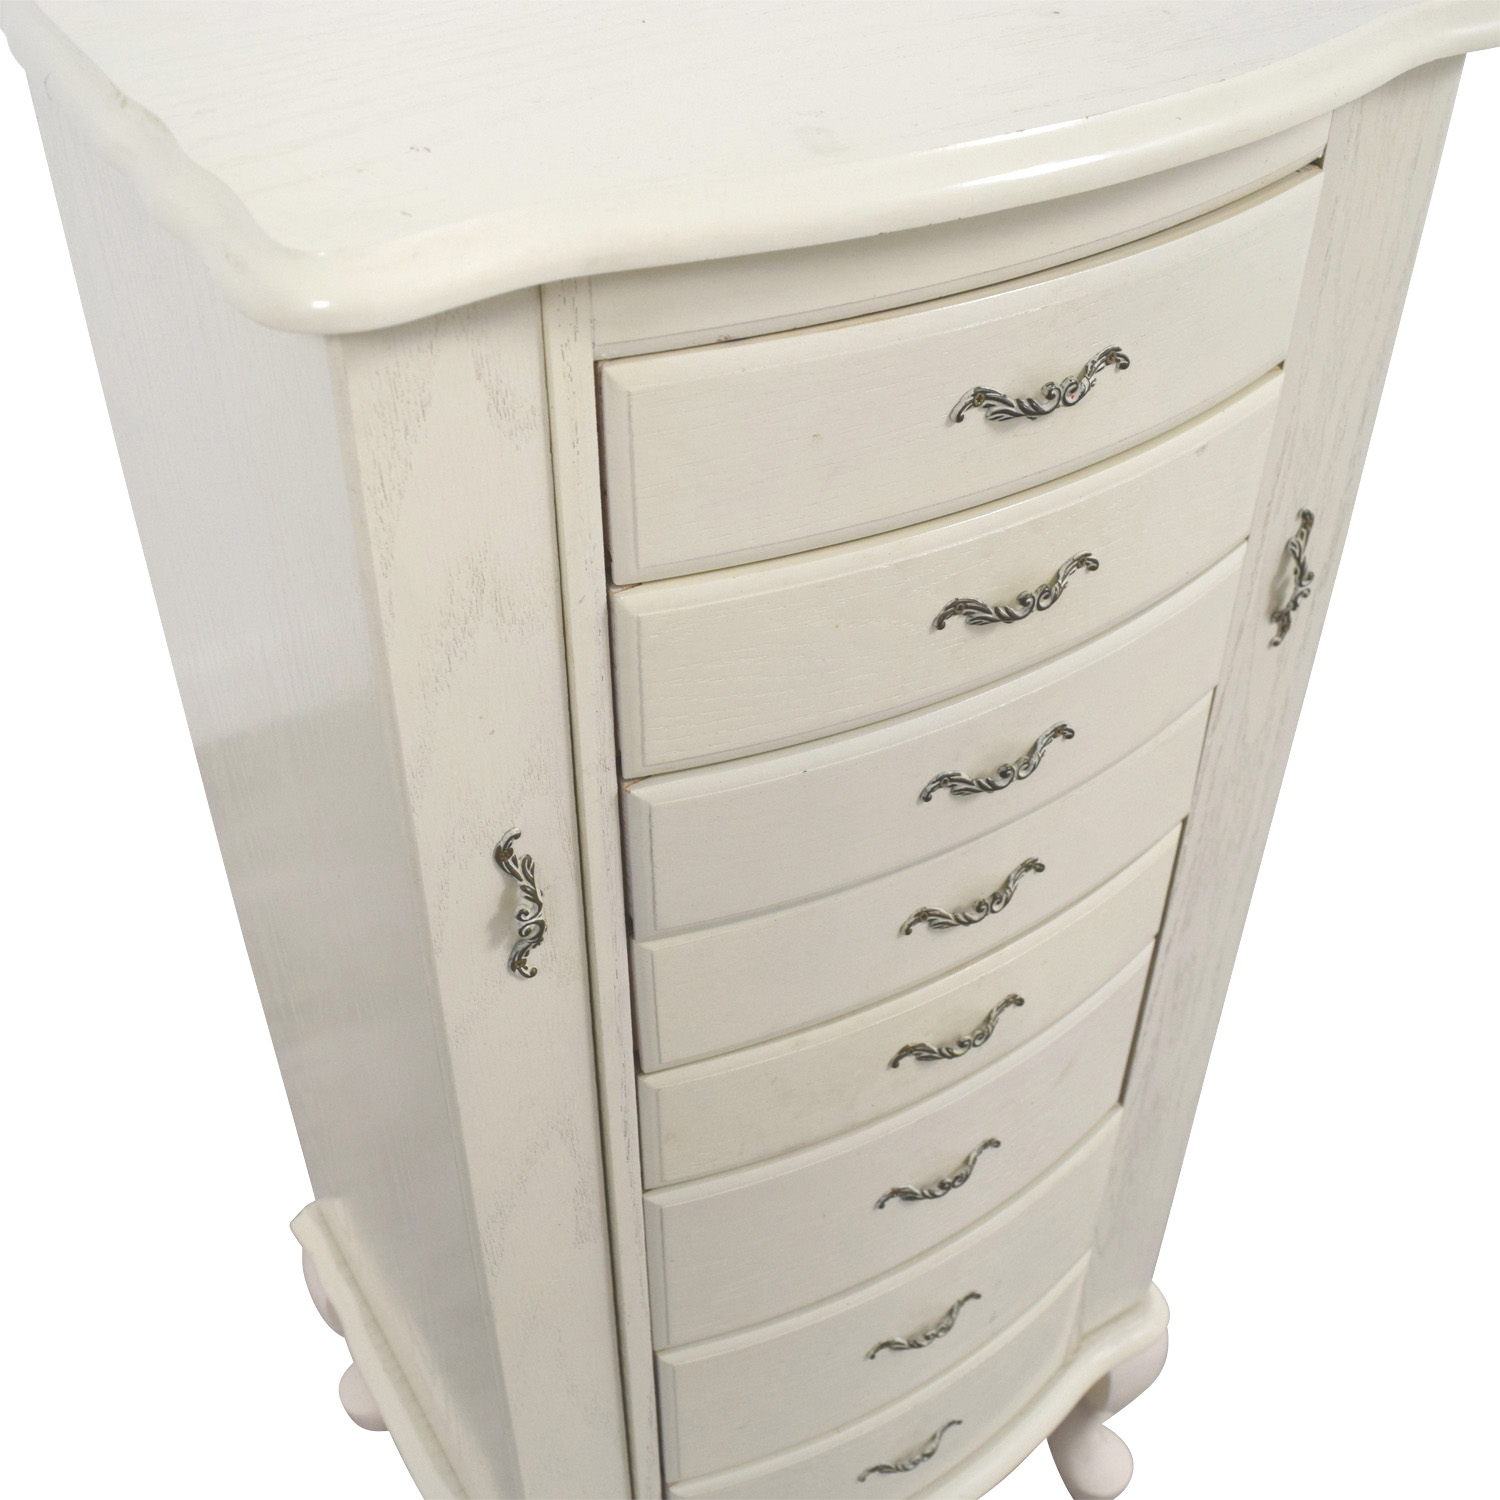 80% OFF   White Vintage Jewelry Armoire / Storage